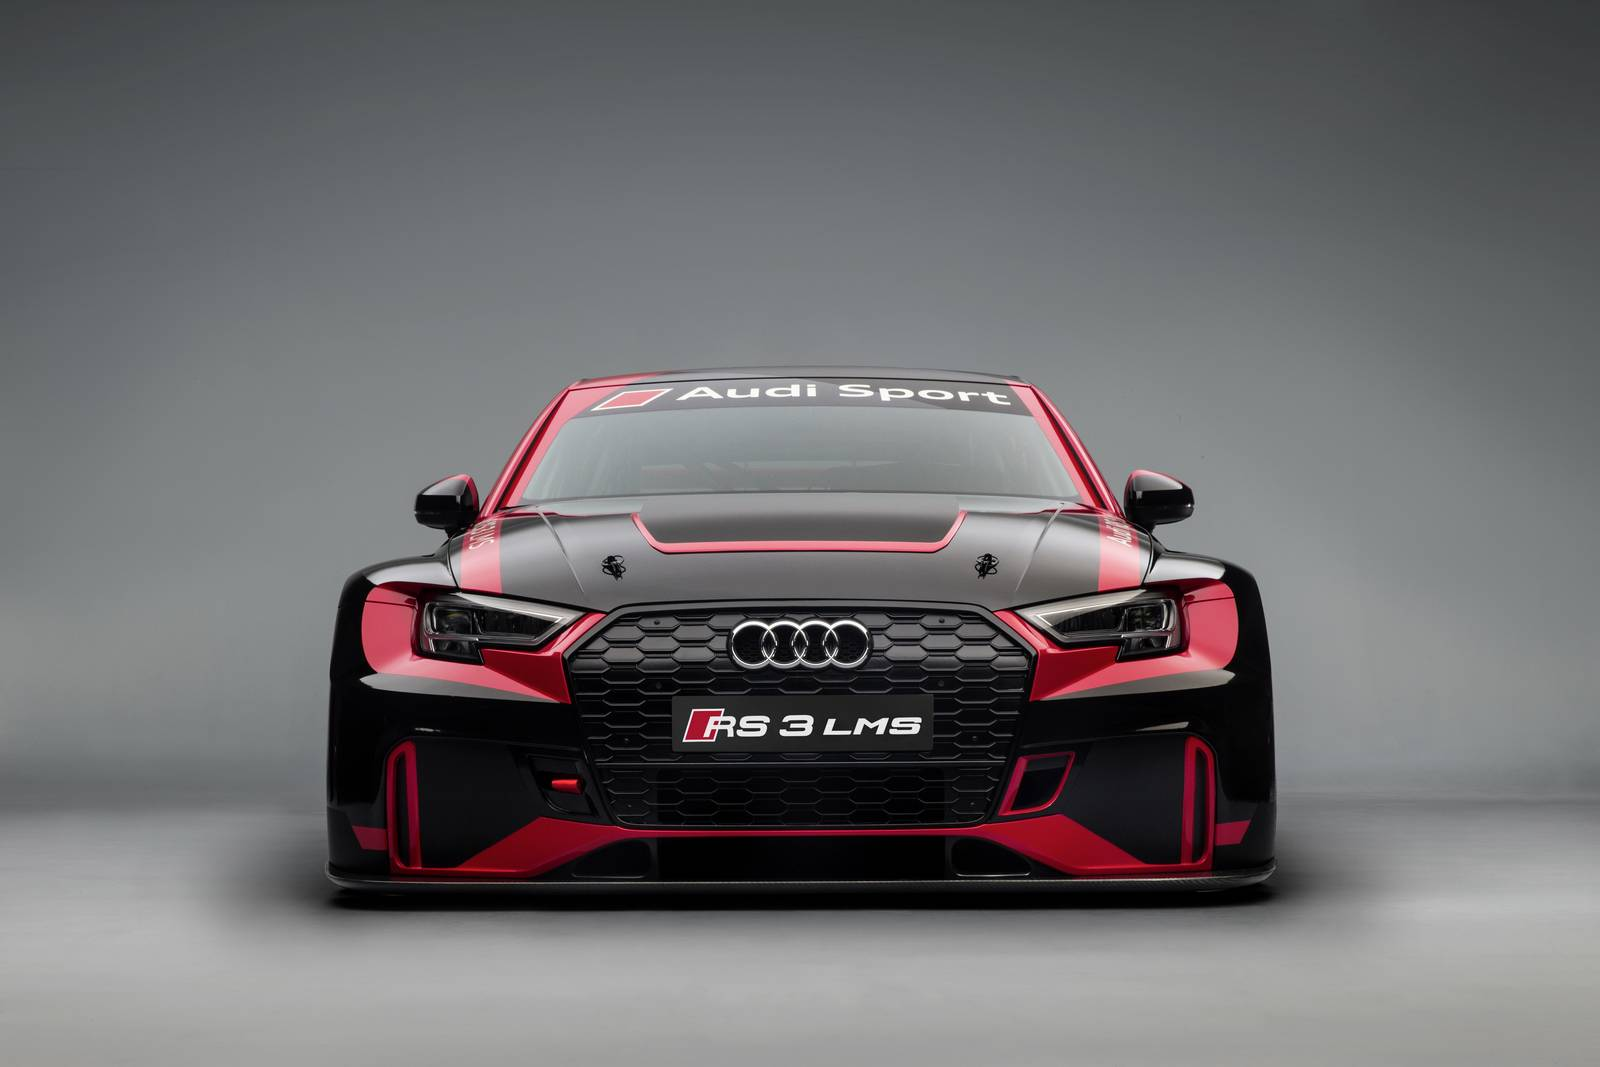 official 2017 audi rs3 lms revealed priced from 129 000 euros gtspirit. Black Bedroom Furniture Sets. Home Design Ideas